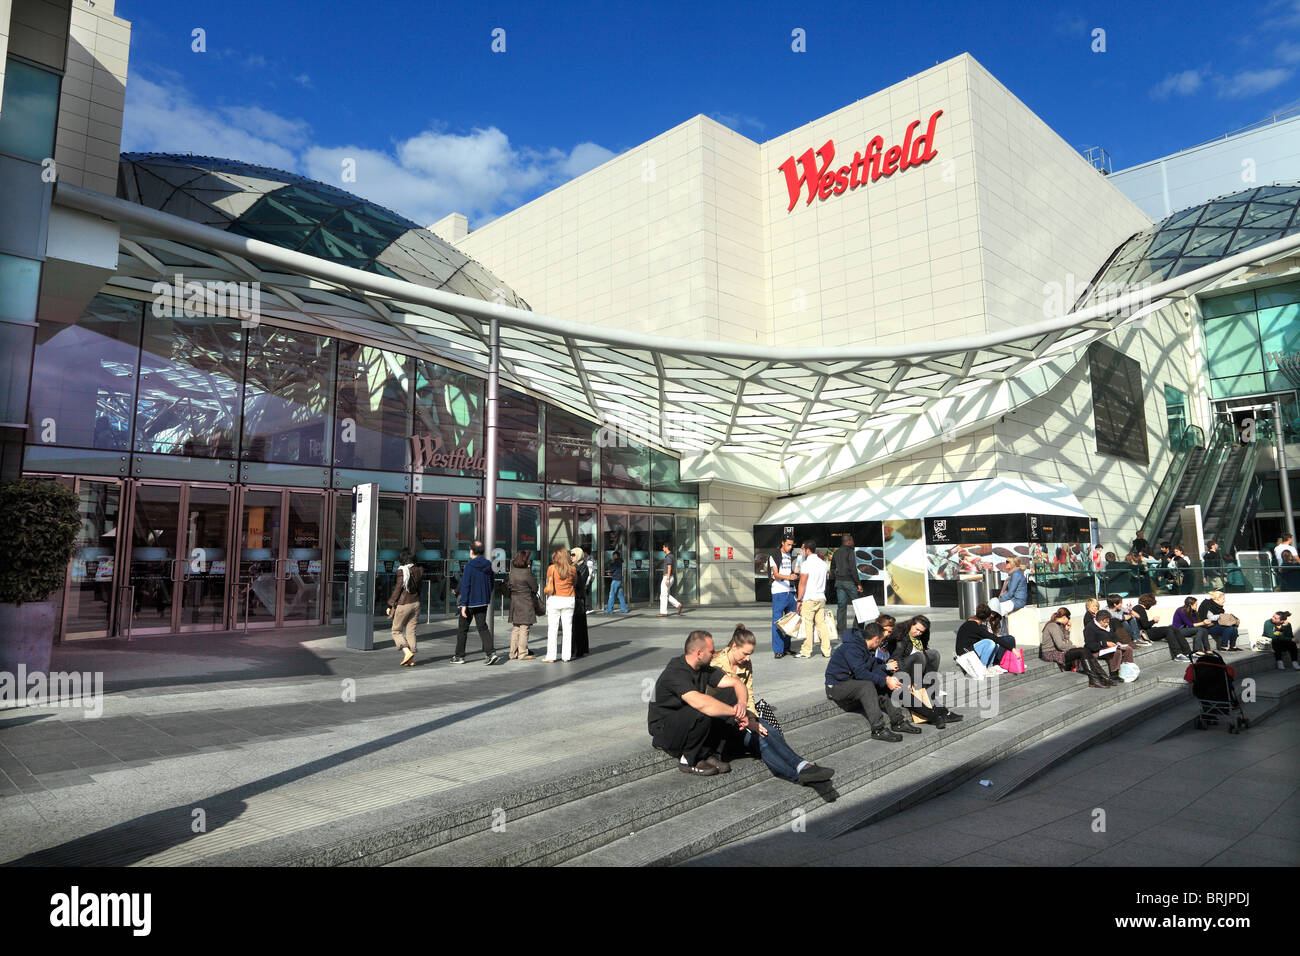 Westfield shopping centre in London - Stock Image